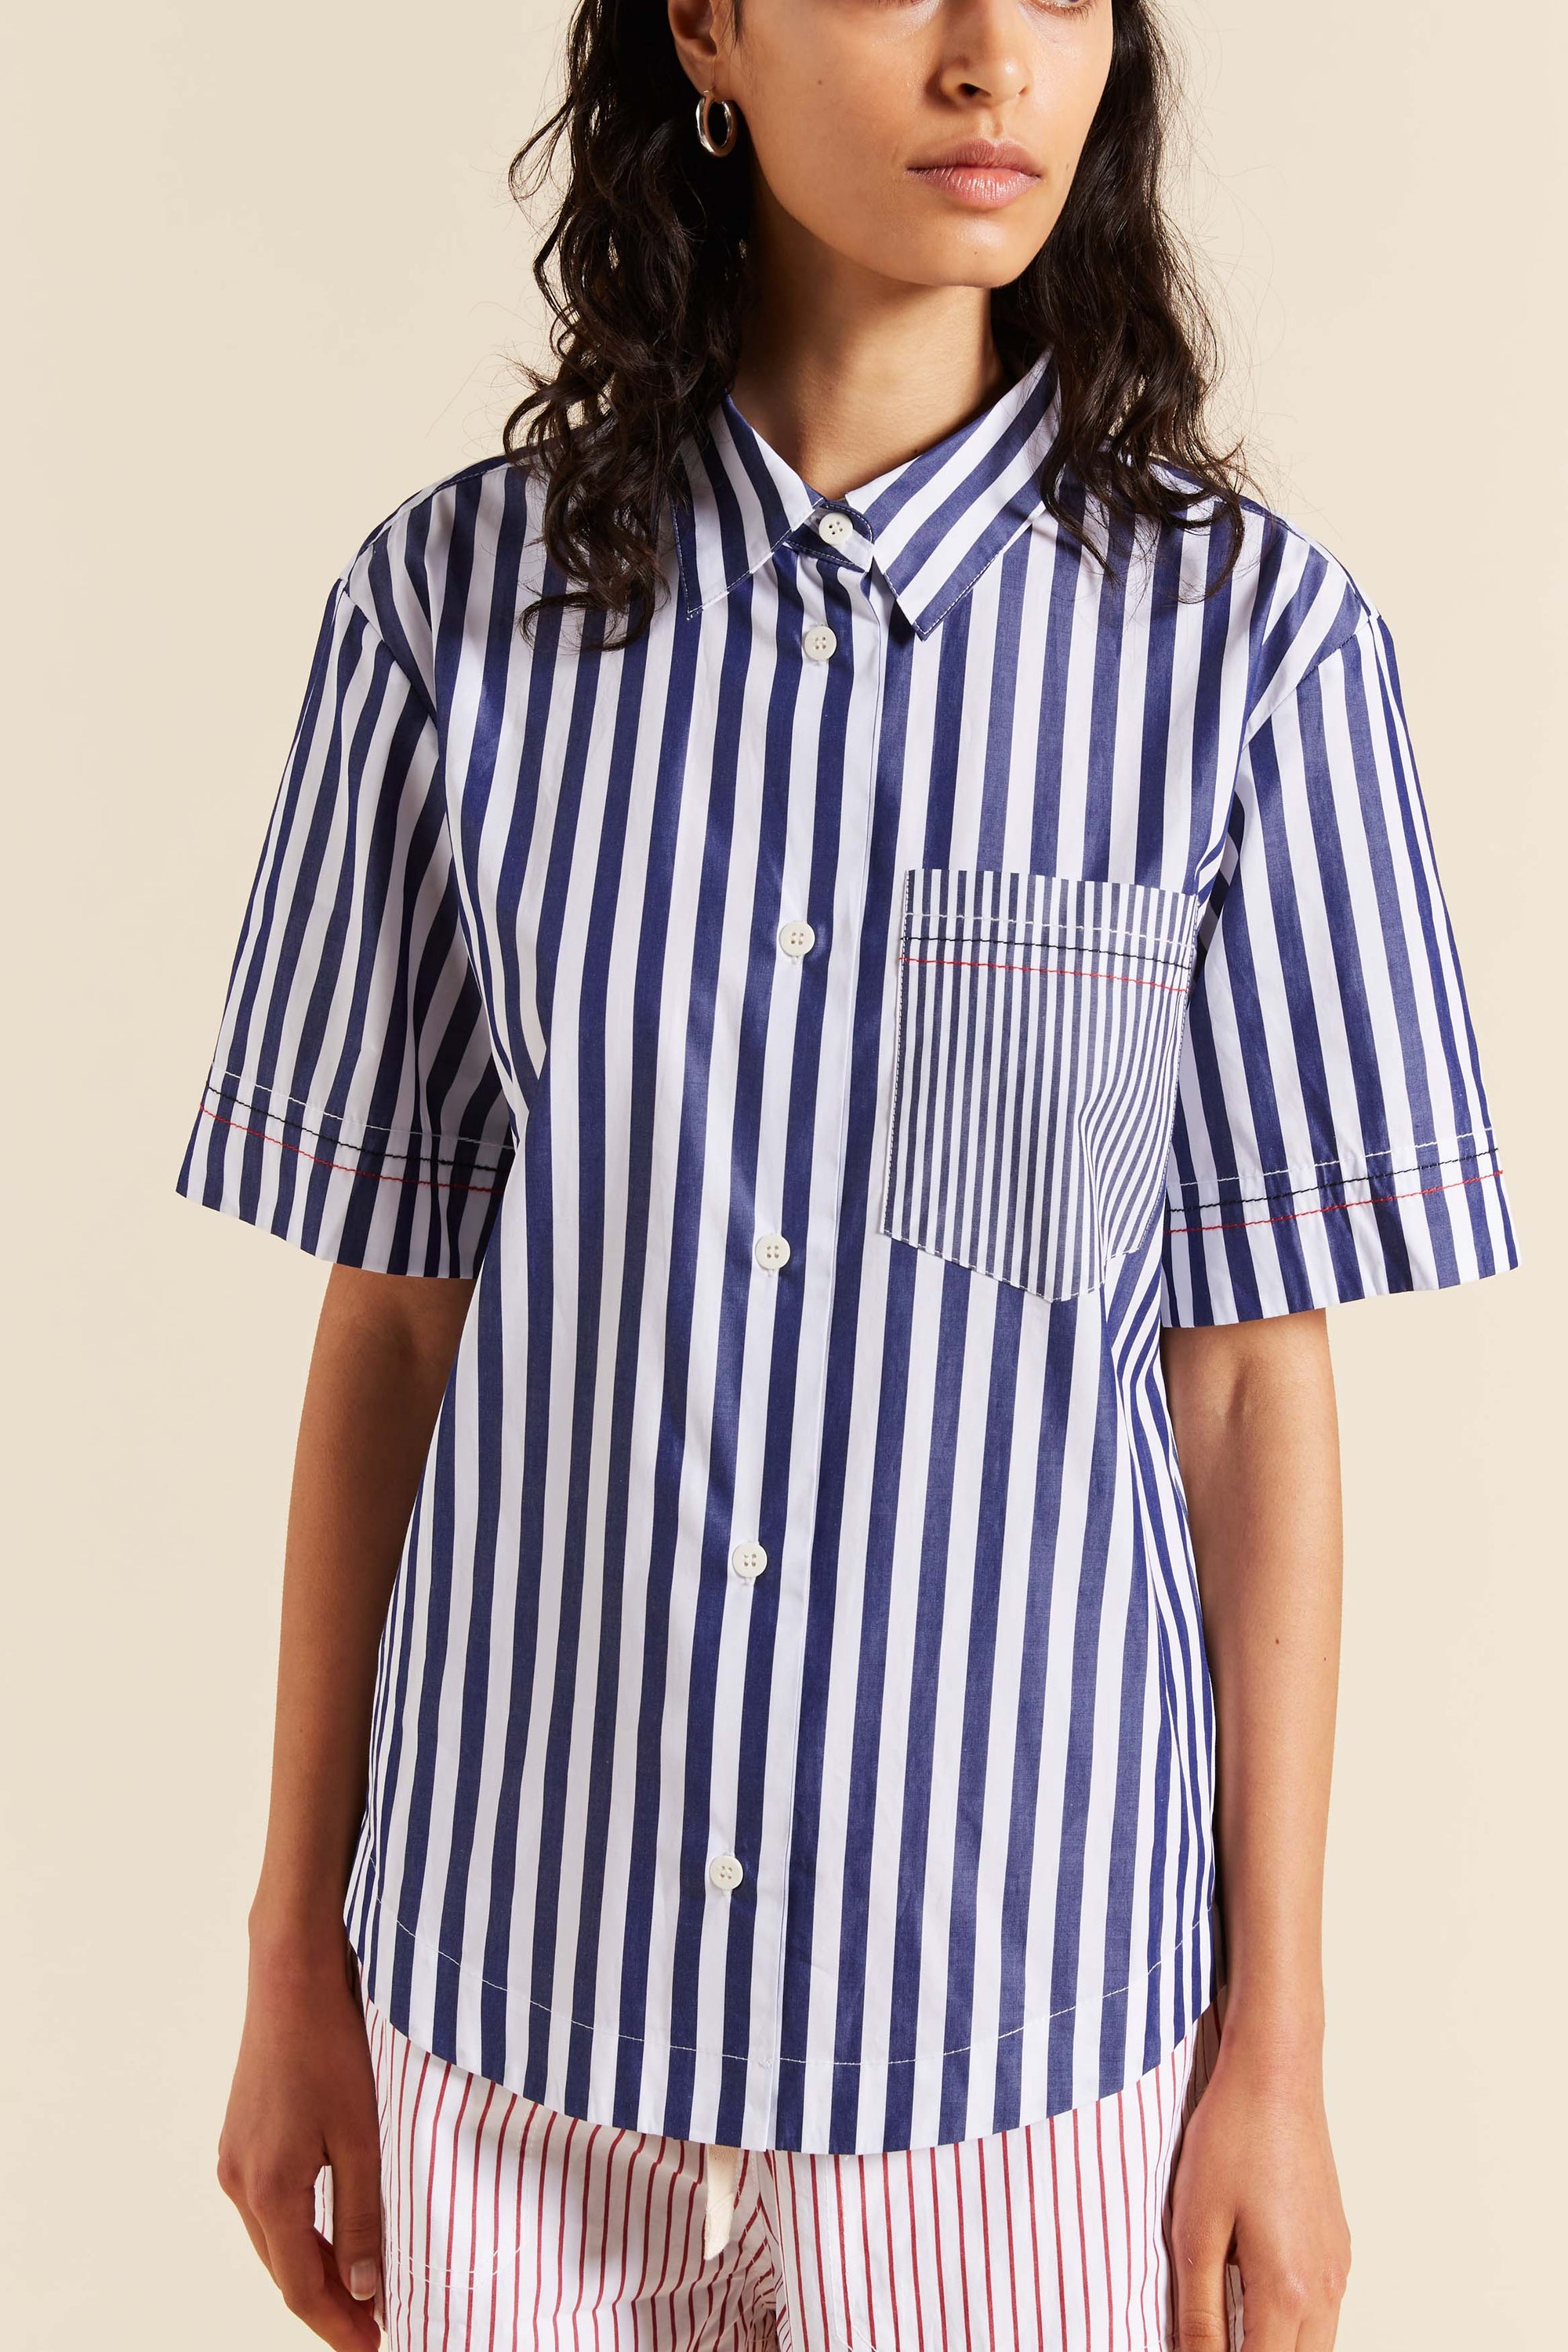 Whistler Stripe Short Sleeve Shirt